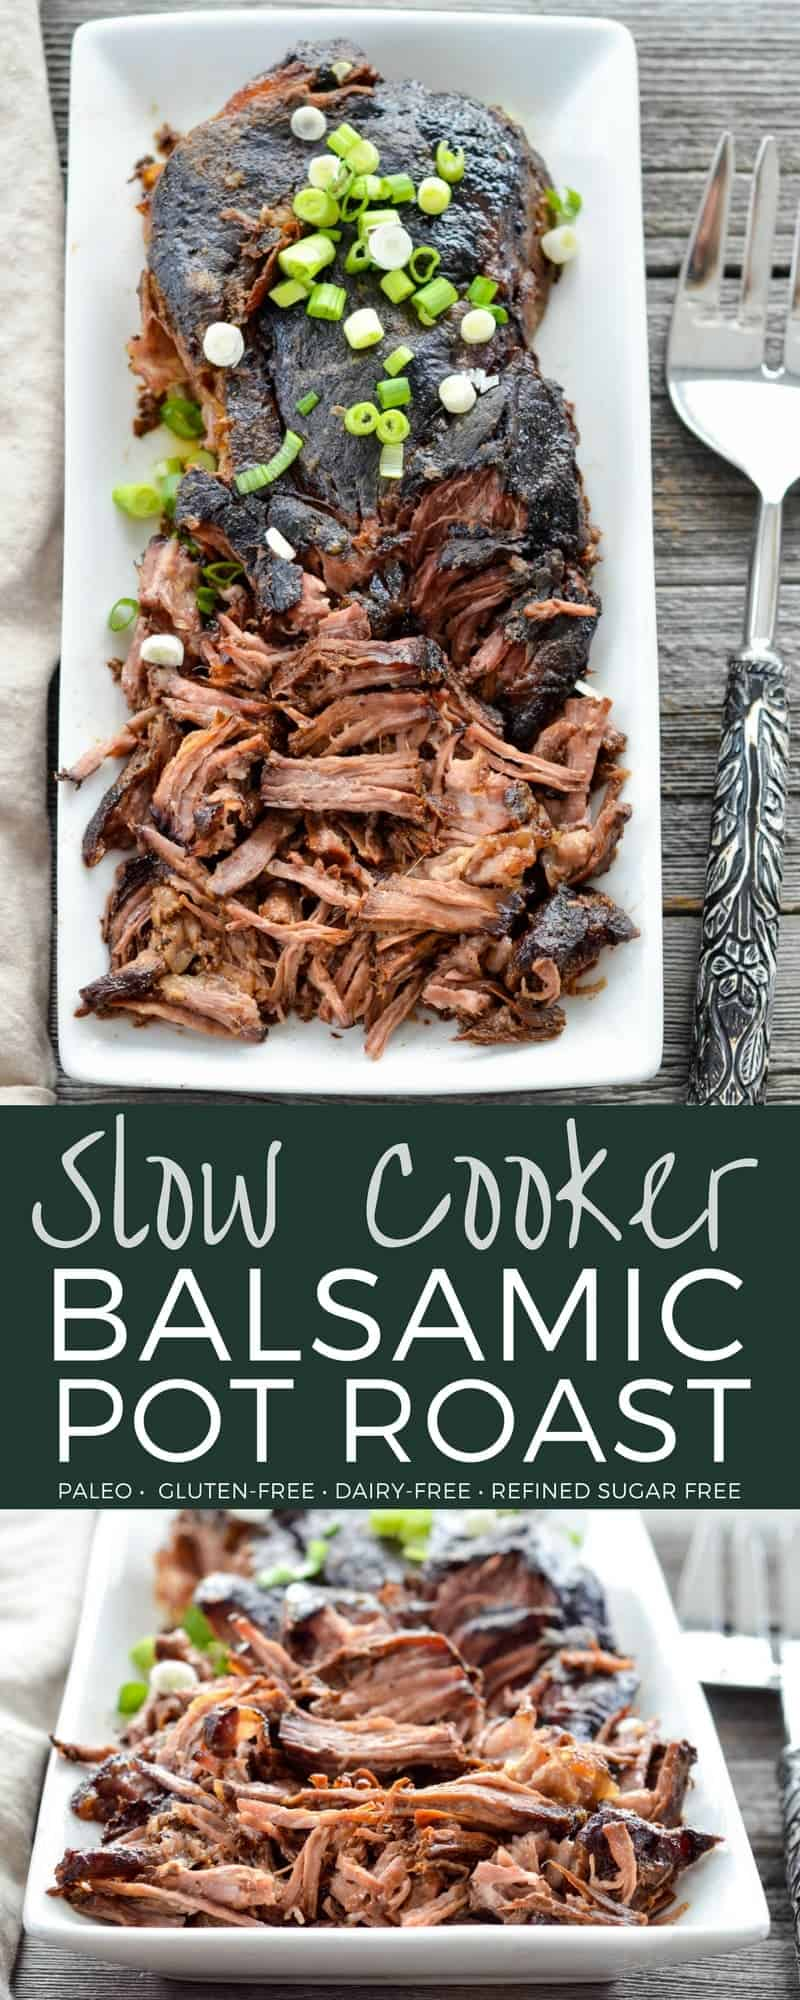 Slow Cooker Balsamic Pot Roast! Easy, healthy make-ahead main dish recipe that takes 5 minutes of prep time! Paleo, gluten-free & dairy-free! #paleo #glutenfree #dairyfree #potroast #healthyrecipe #slowcooker